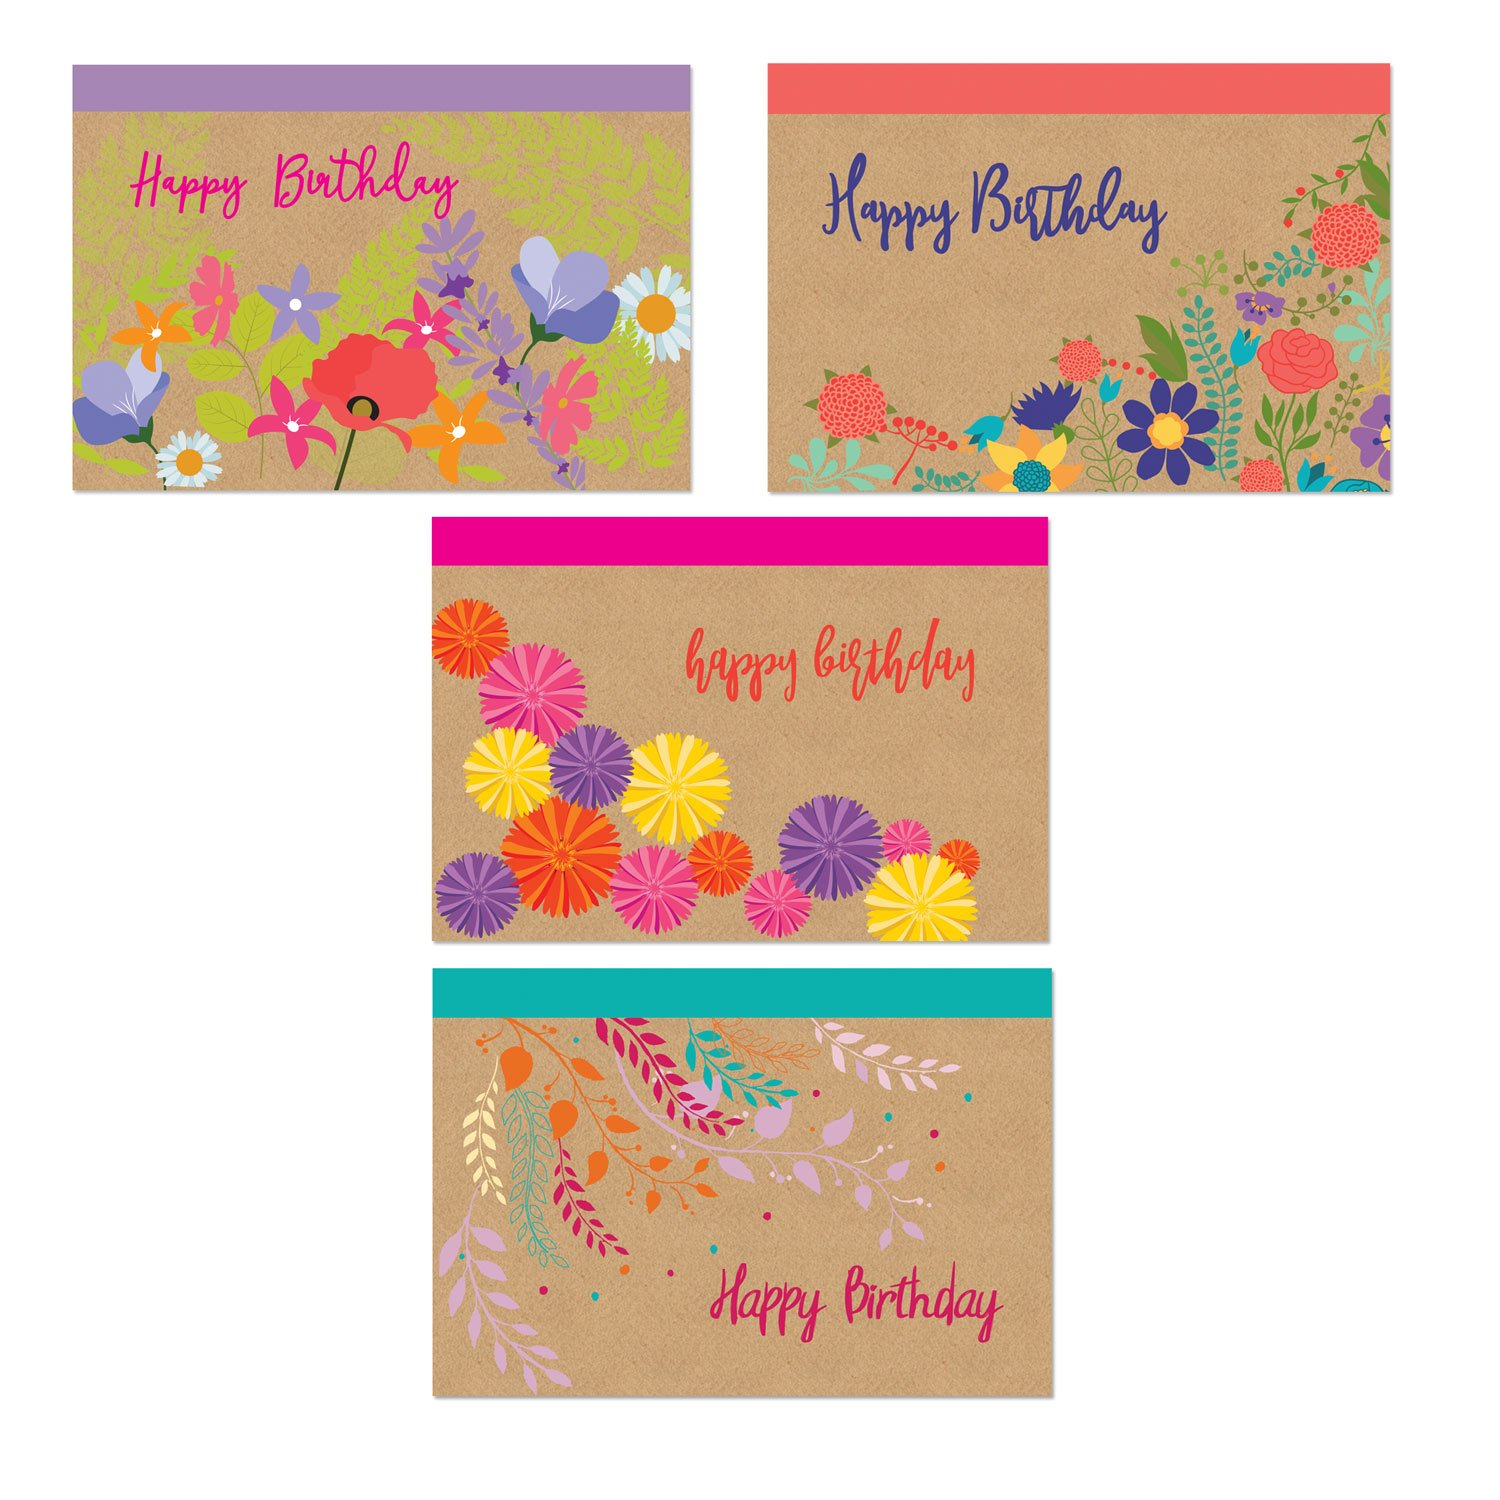 Assorted Happy Birthday Postcards - 4 Fun Birthday Designs - 4'' x 6'' Postcards